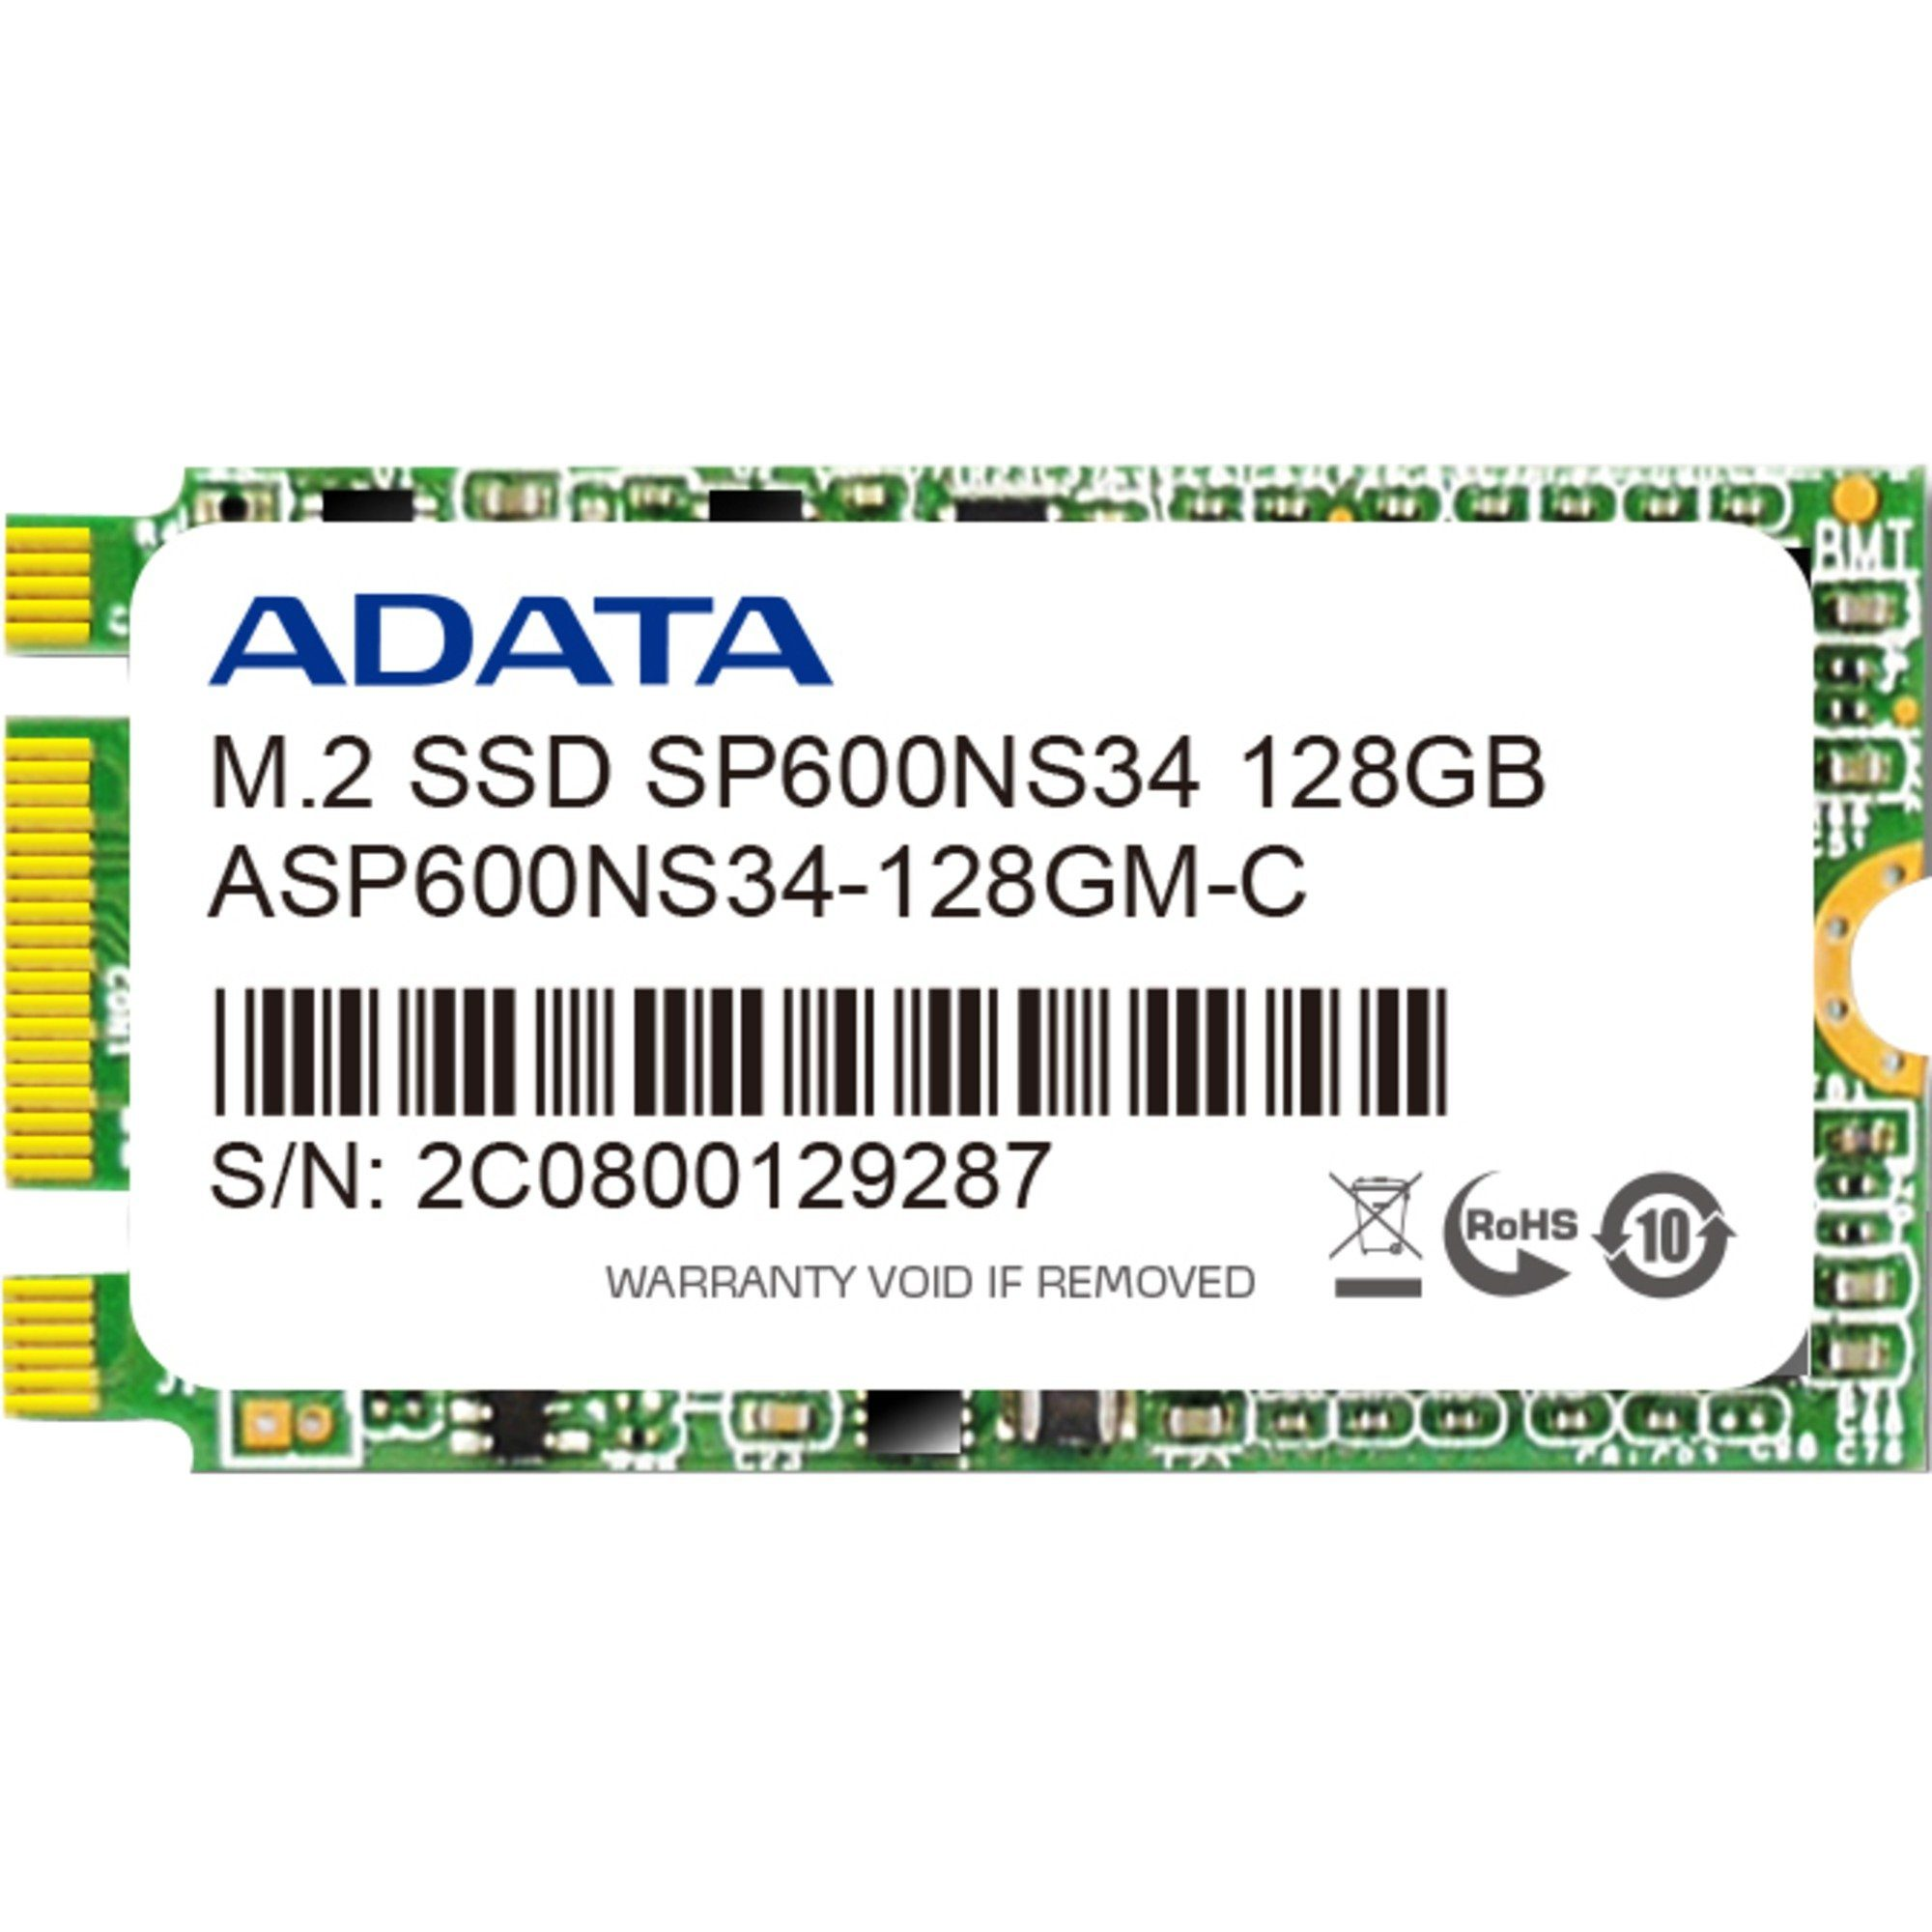 ADATA Solid State Drive »ASP600NS34-128GM-C 128 GB«